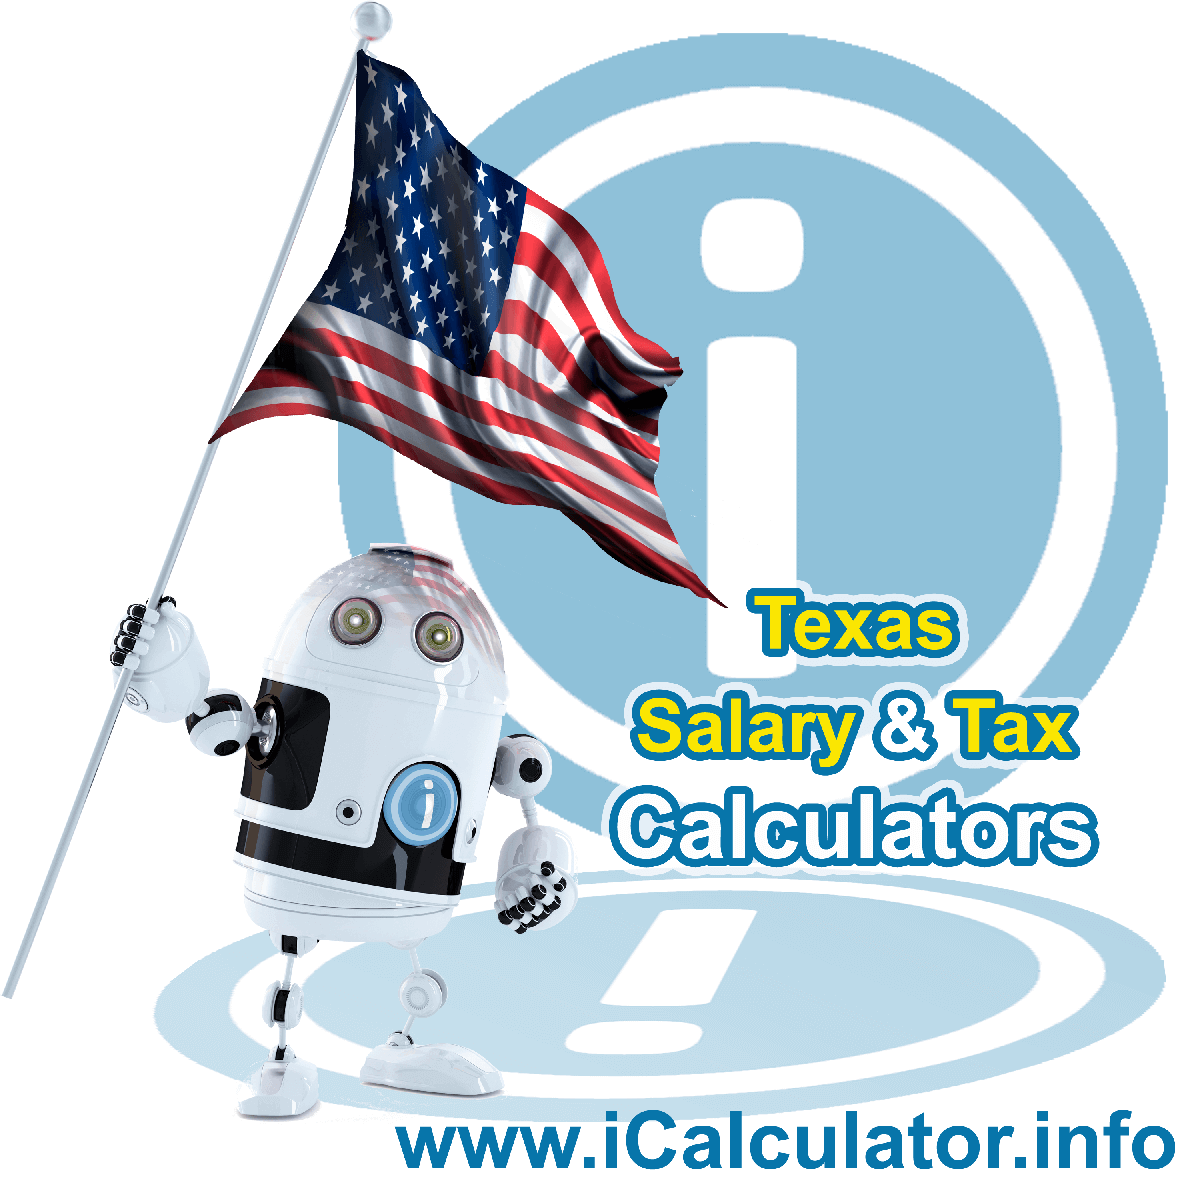 Texas Salary Calculator 2020 | iCalculator | The Texas Salary Calculator allows you to quickly calculate your salary after tax including Texas State Tax, Federal State Tax, Medicare Deductions, Social Security, Capital Gains and other income tax and salary deductions complete with supporting Texas state tax tables